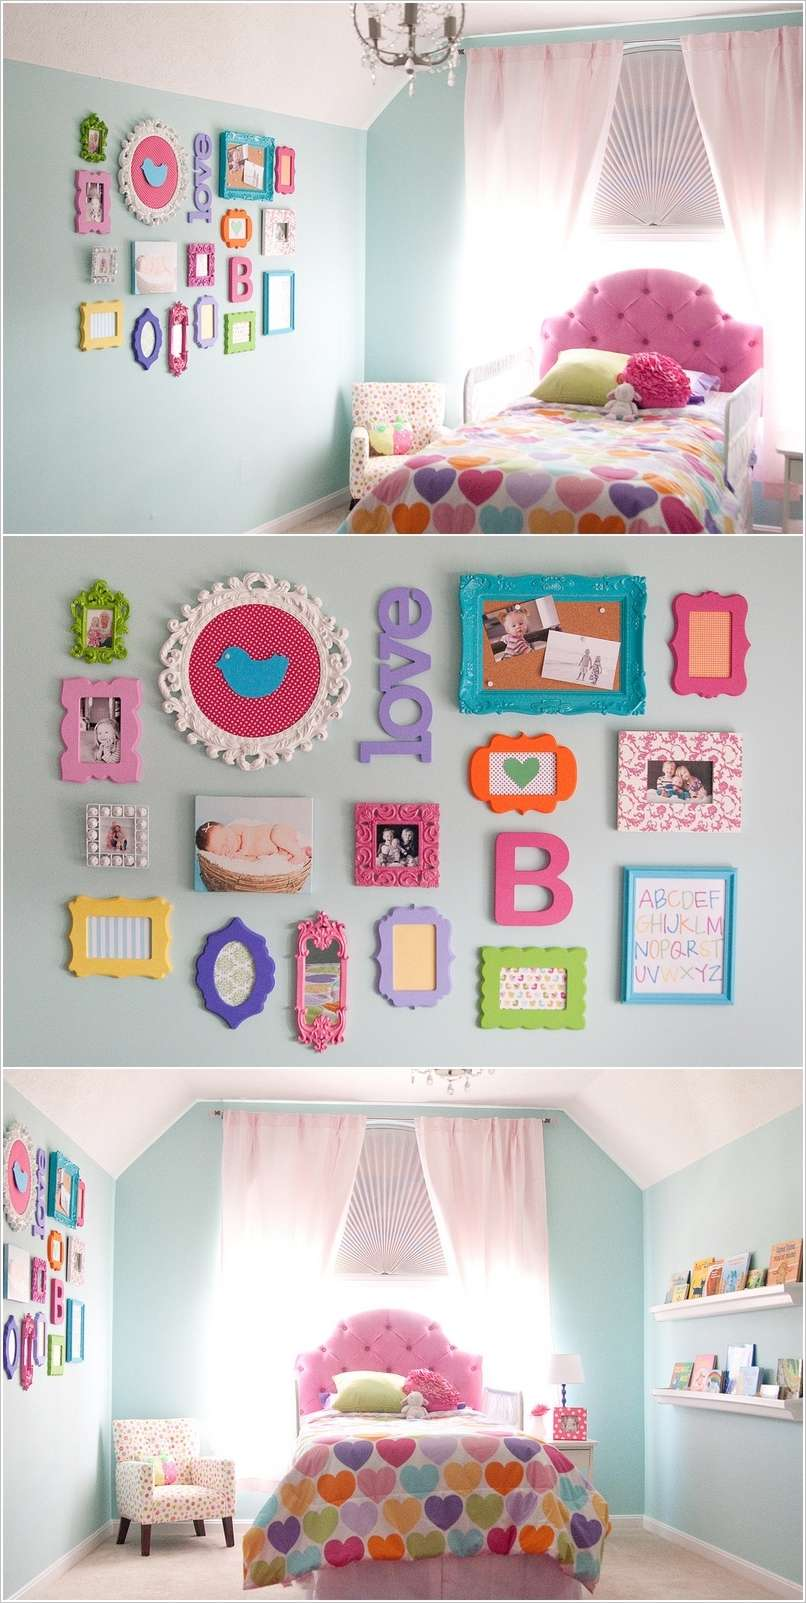 10 cute ideas to decorate a toddler girl 39 s room Little girls bedroom decorating ideas